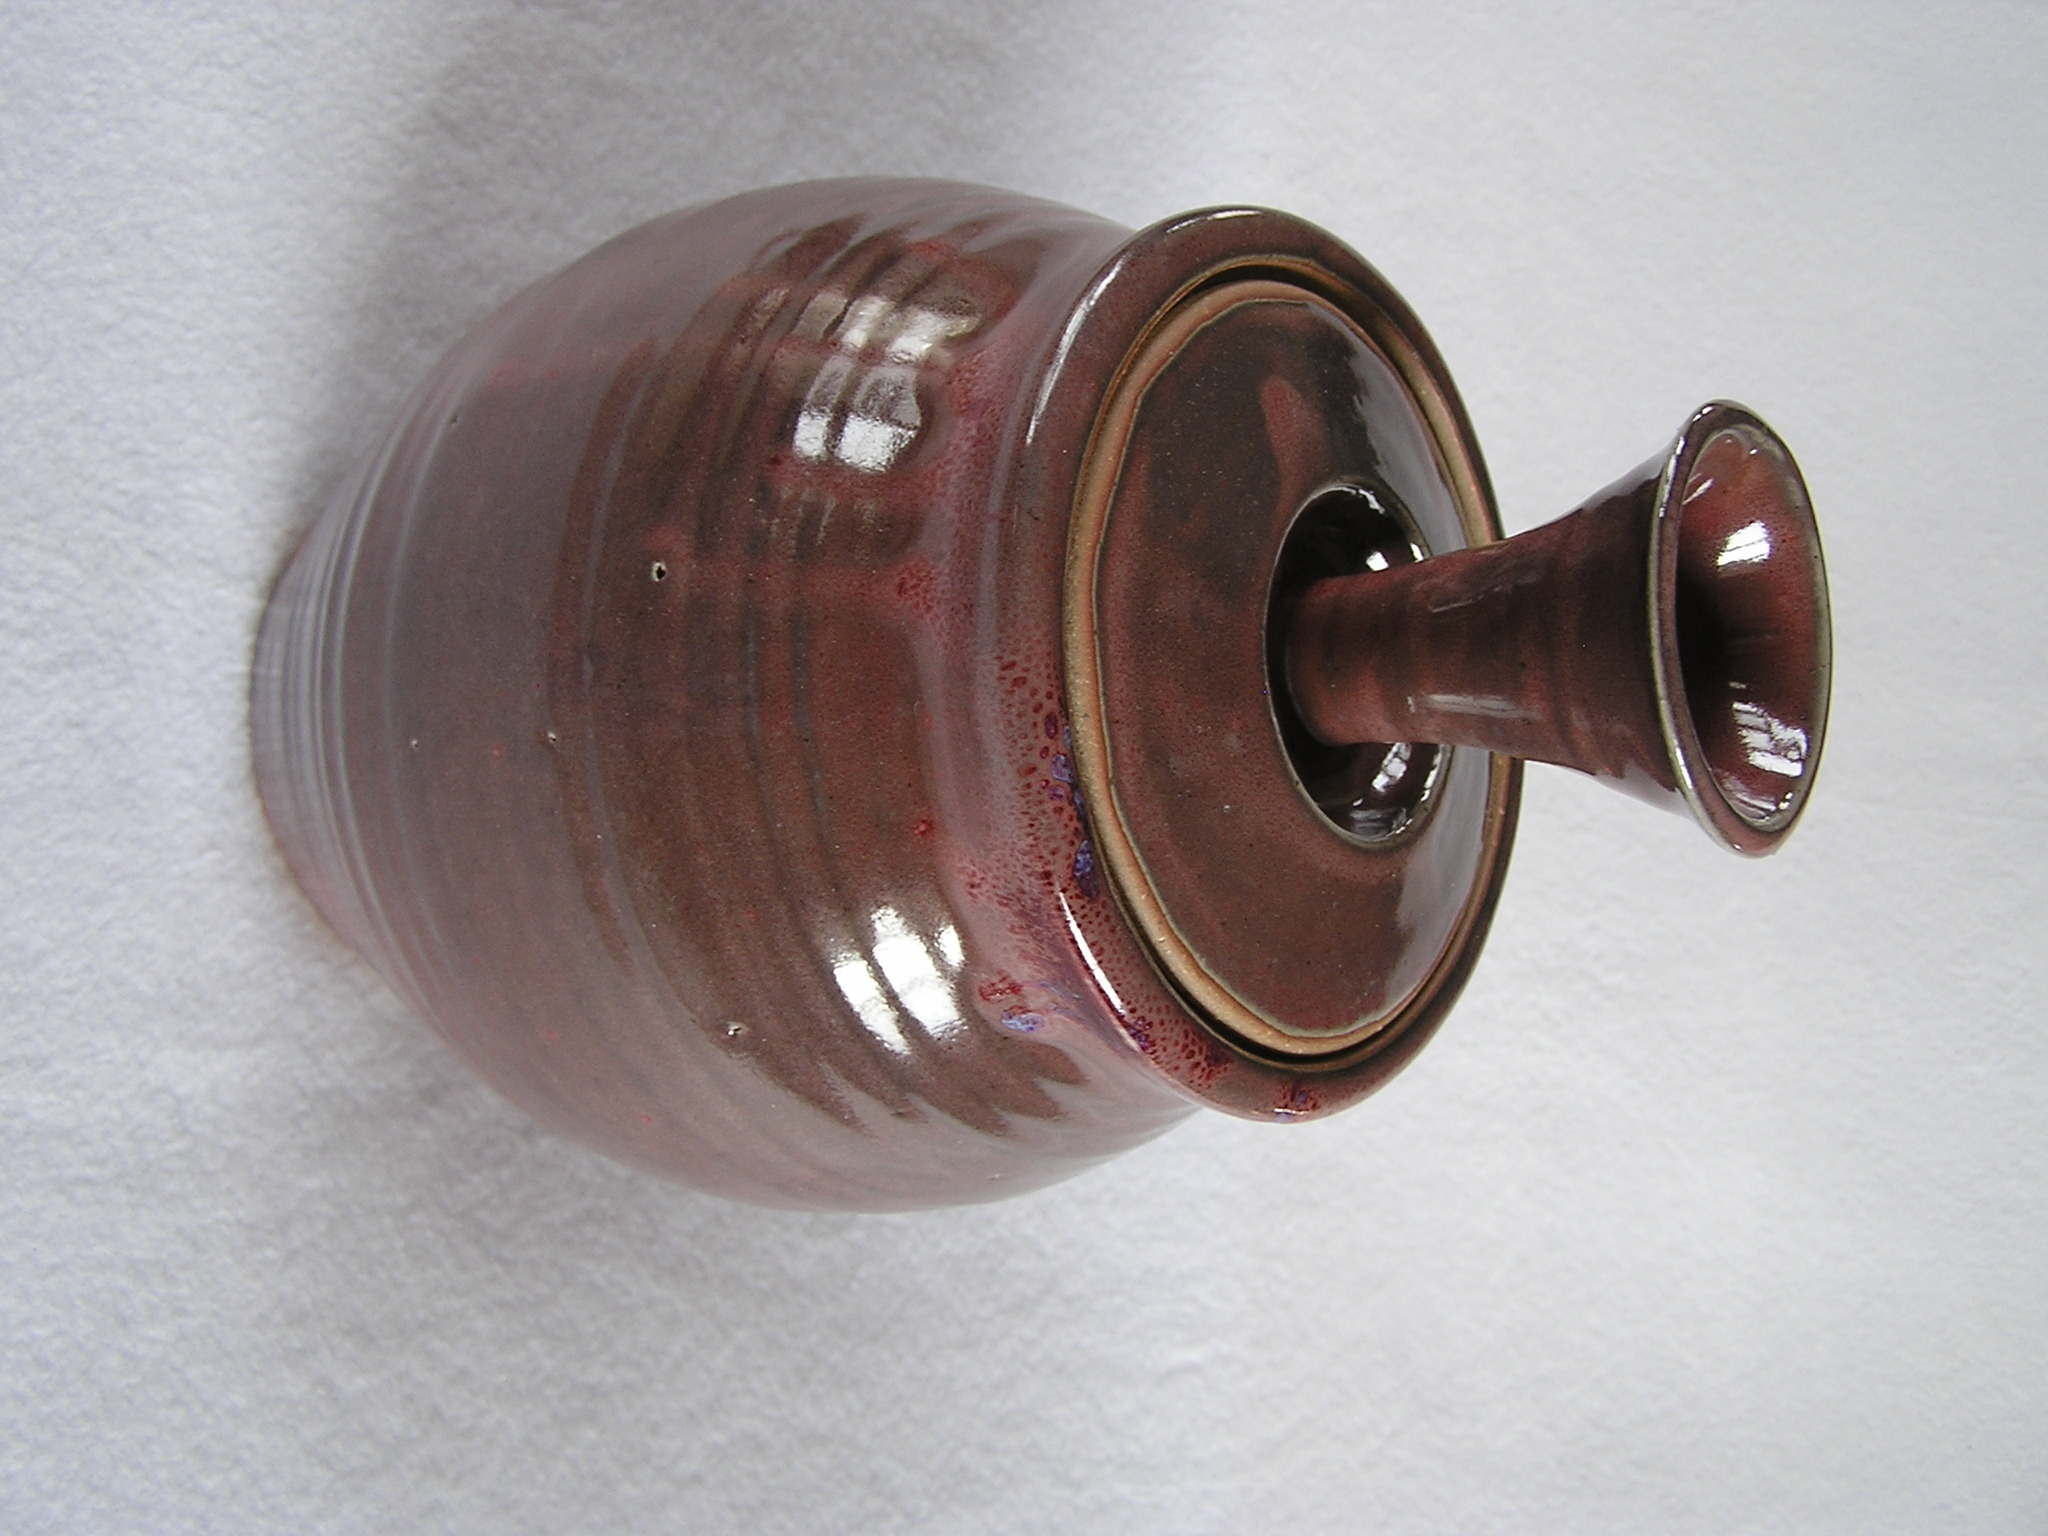 Canister- 8 in Group C.4 Burgundy 6